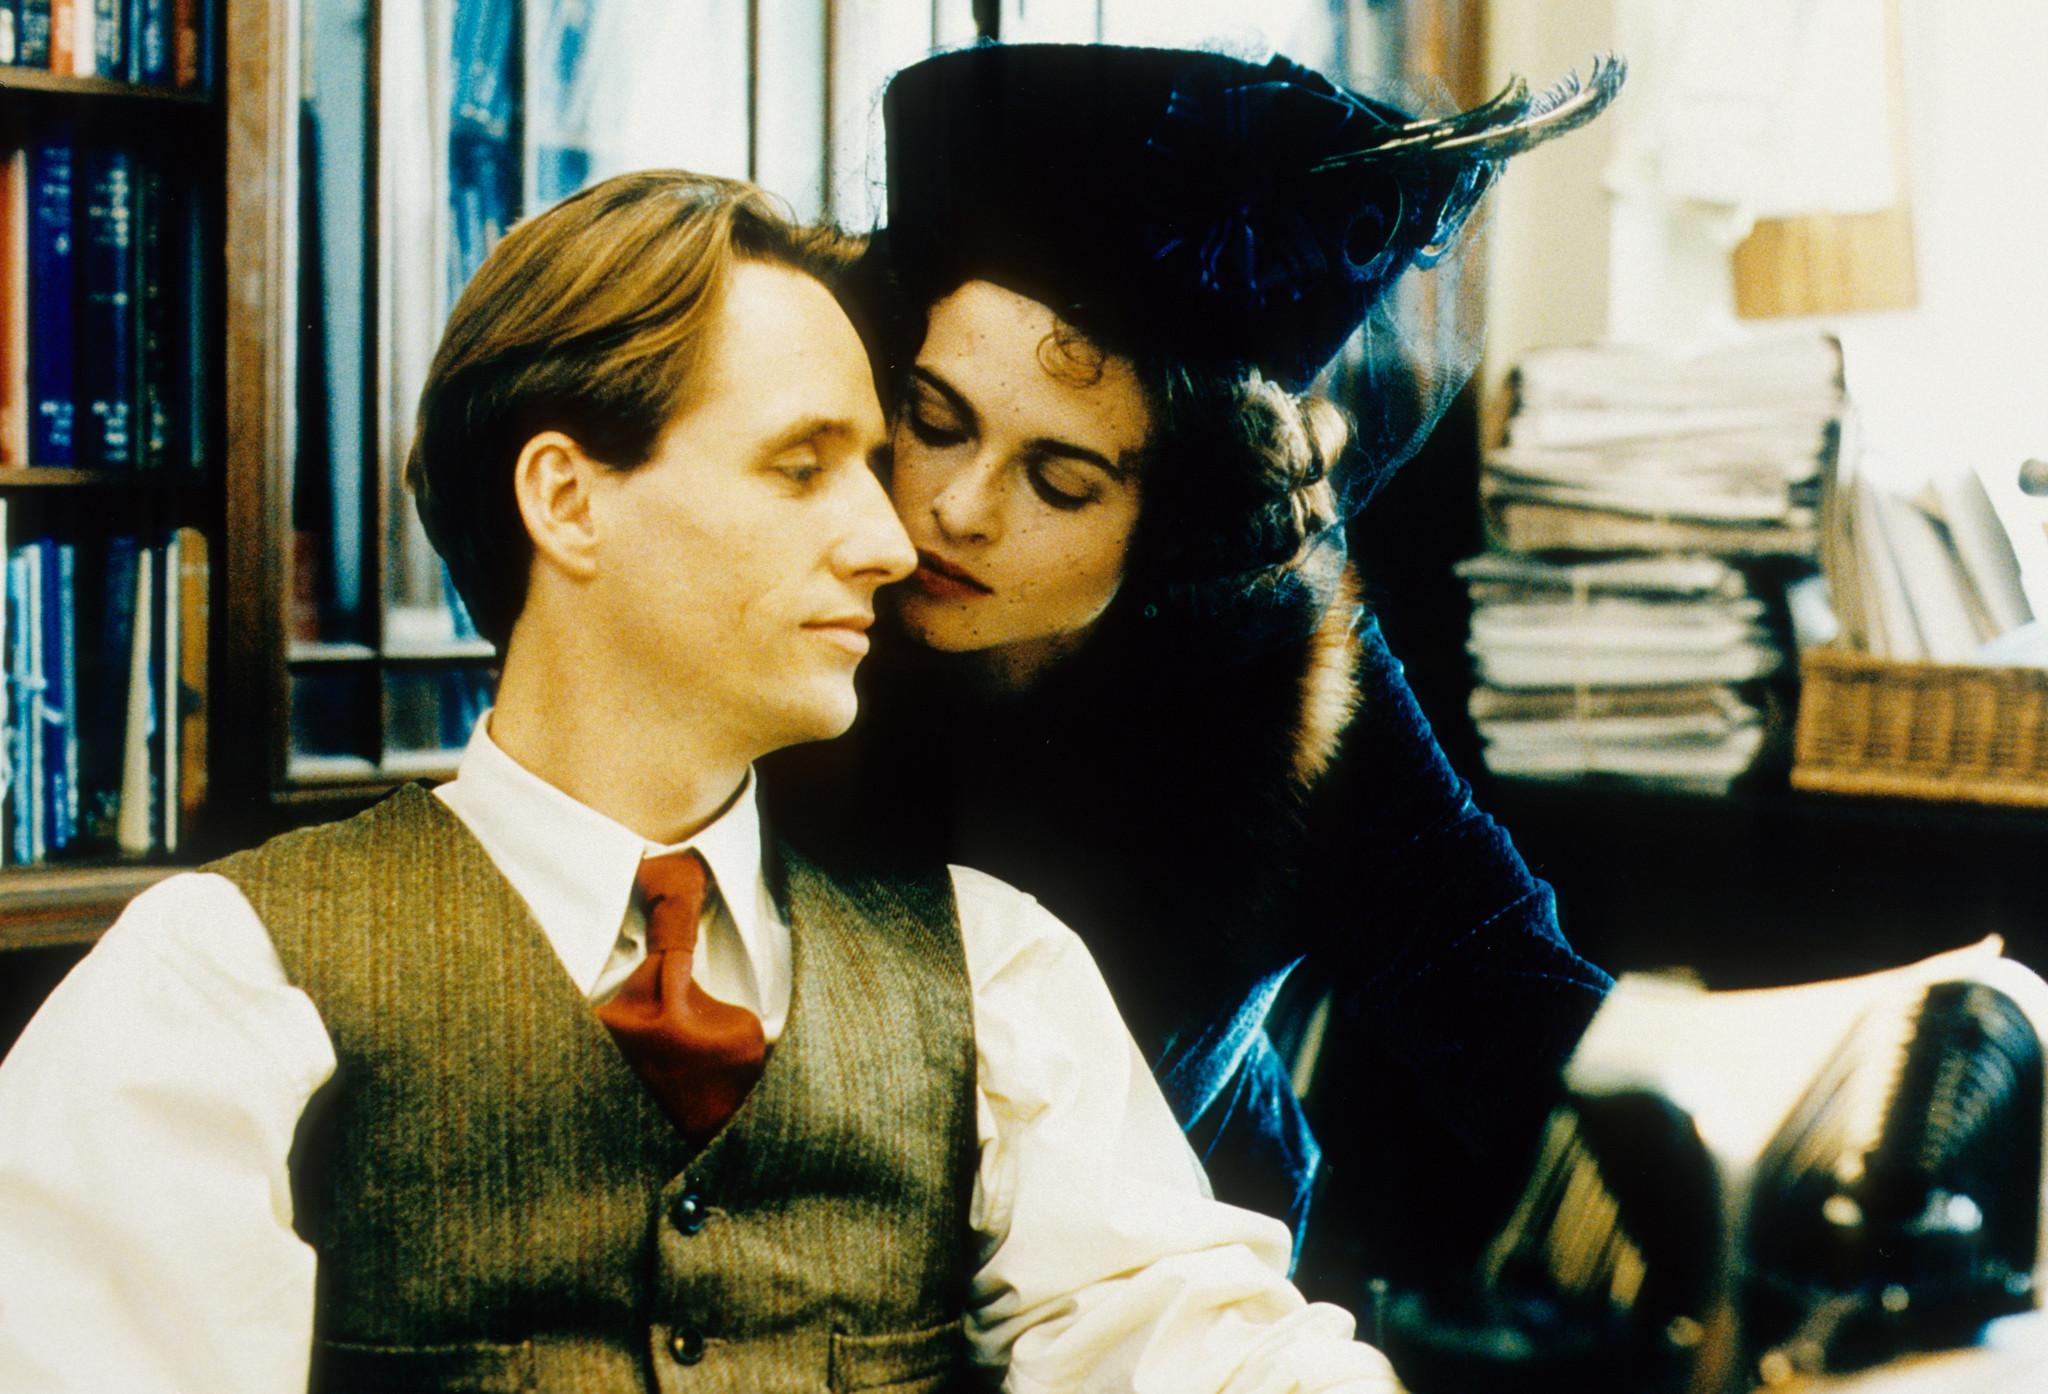 helena bonham carter and linus roache in the wings of the dove 1997 Top 25 Films of 1997